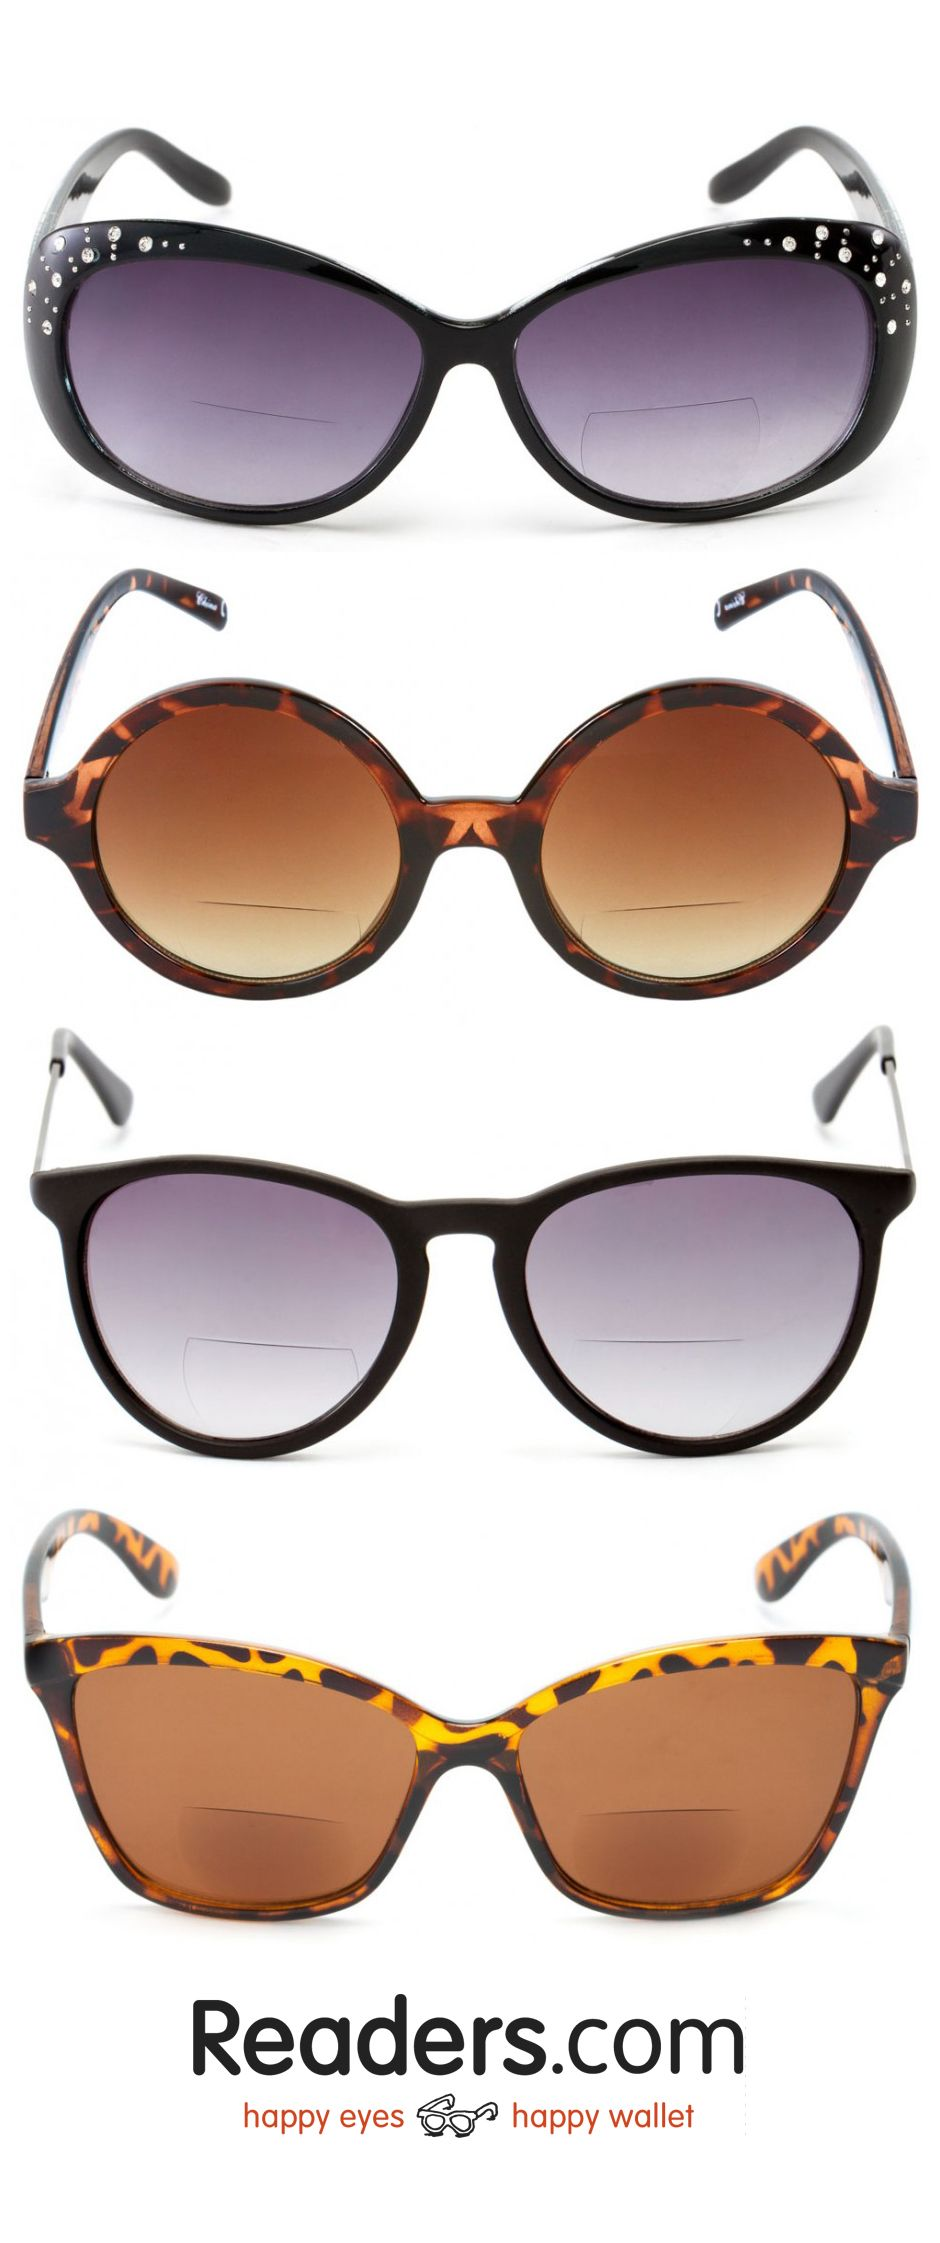 e2dae3122e35 Add a little mystery with our bifocal reading sunglasses for women ...